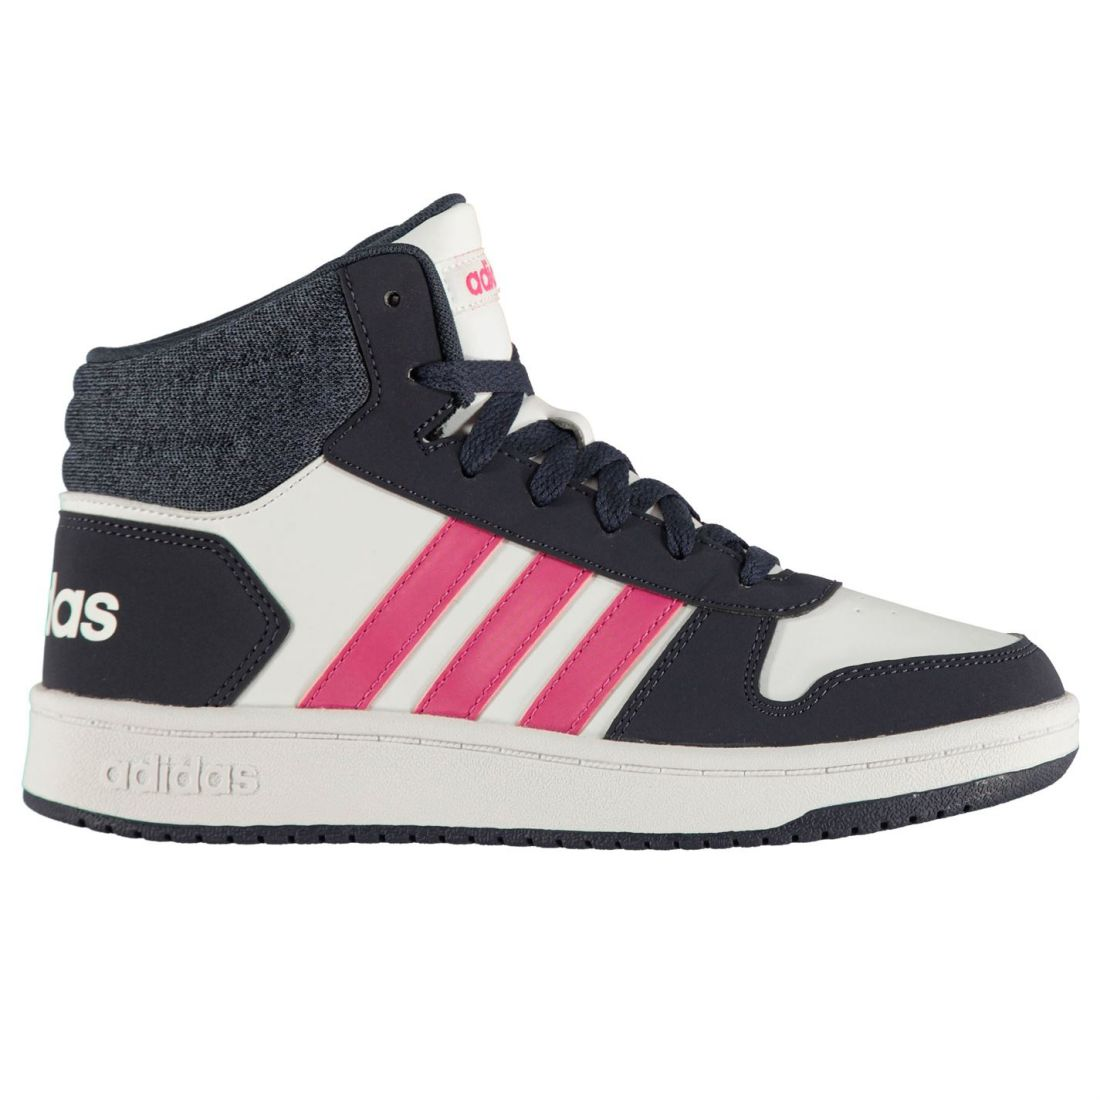 online retailer db99a cce07 Image is loading adidas-Kids-Girls-Hoops-2-0-Mid-Top-